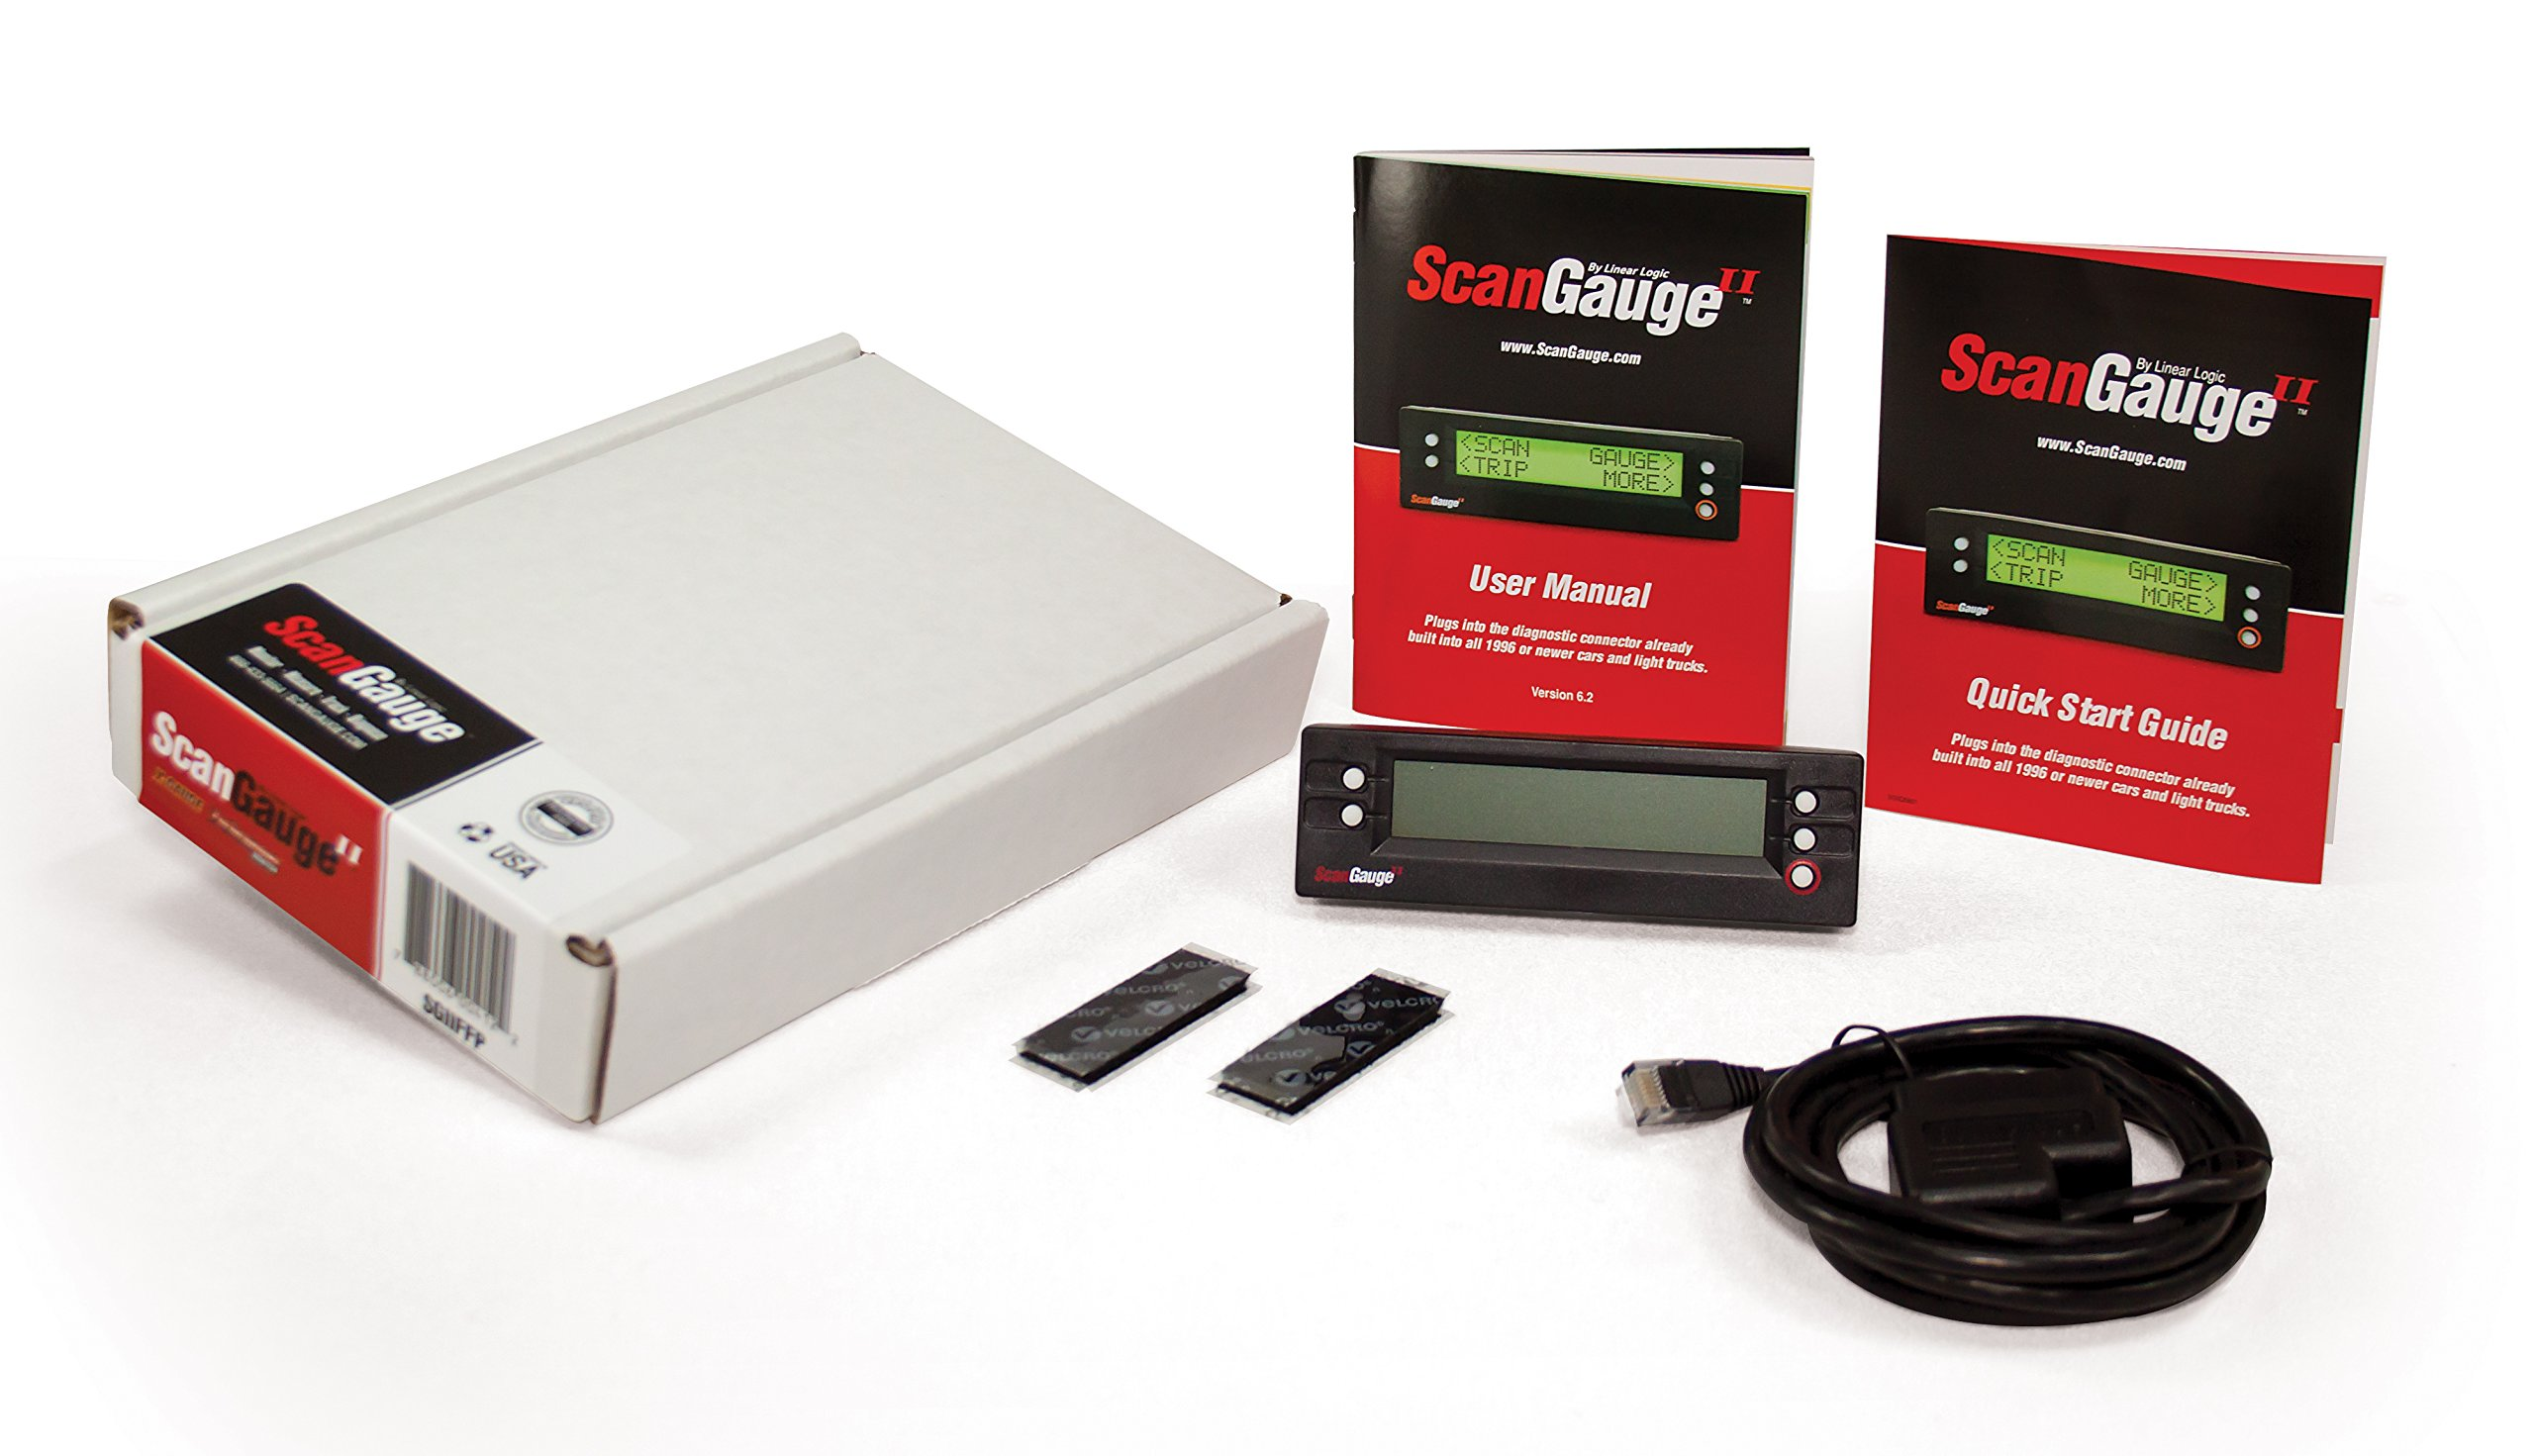 ScanGauge SGIIFFP Ultra Compact 3-in-1 Automotive Computer with Customizable Real-Time Fuel Economy Digital Gauges (Frustration Free) by ScanGauge